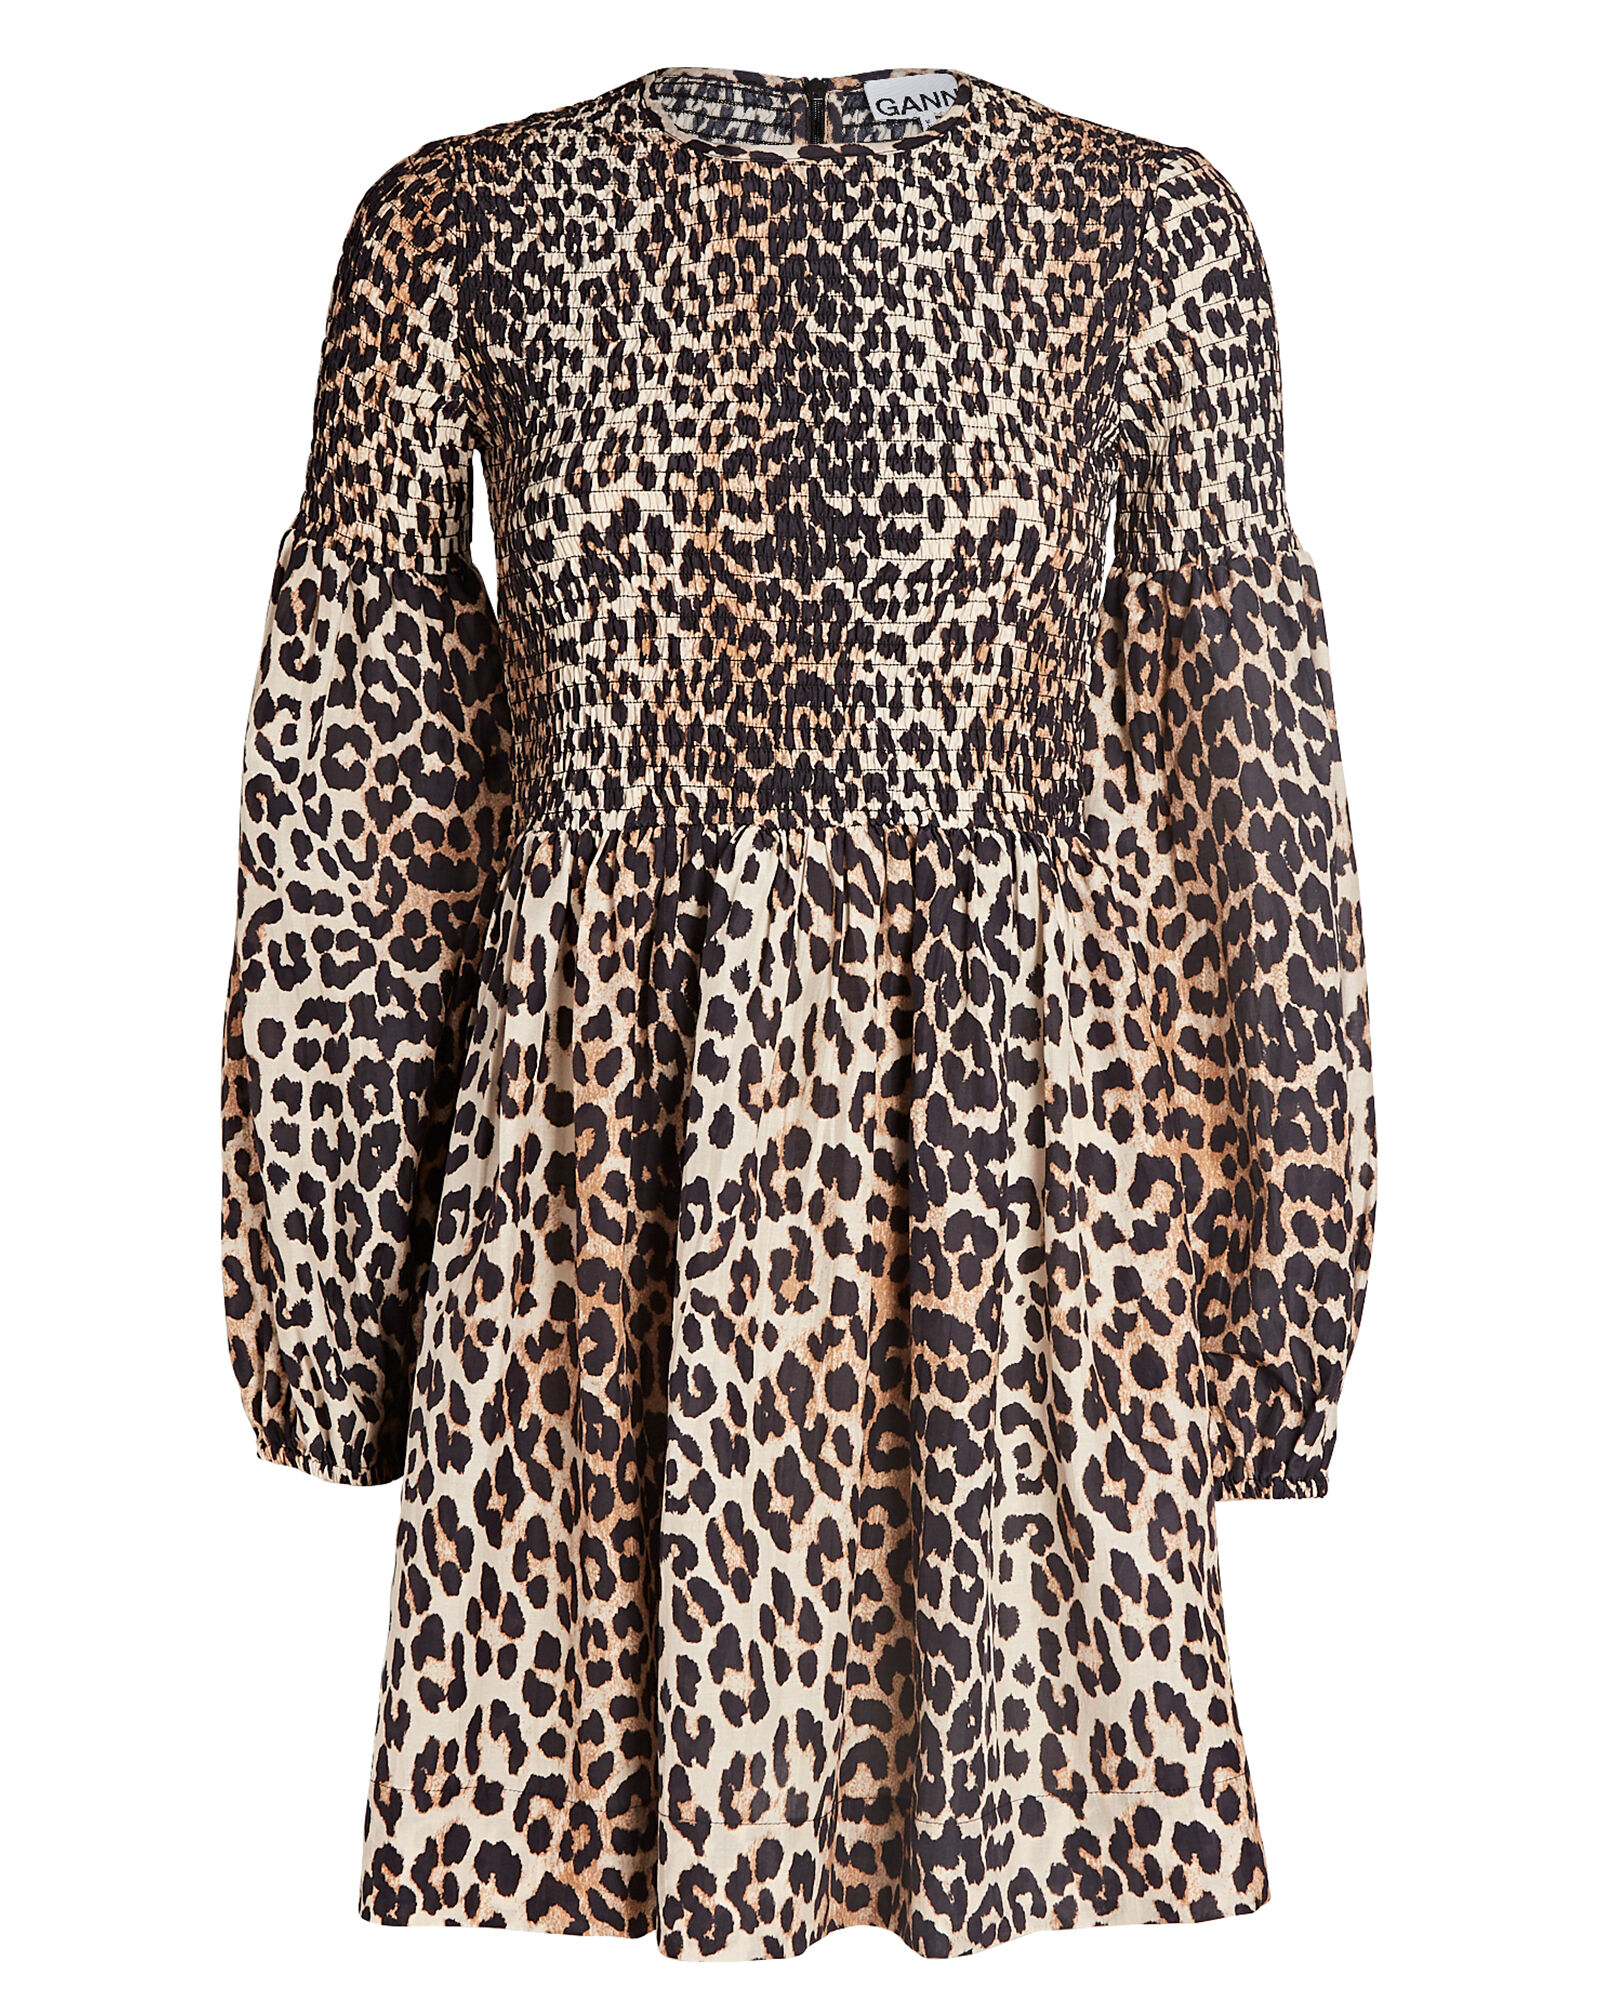 Smocked Silk-Cotton Leopard Mini Dress, BEIGE/BLACK, hi-res